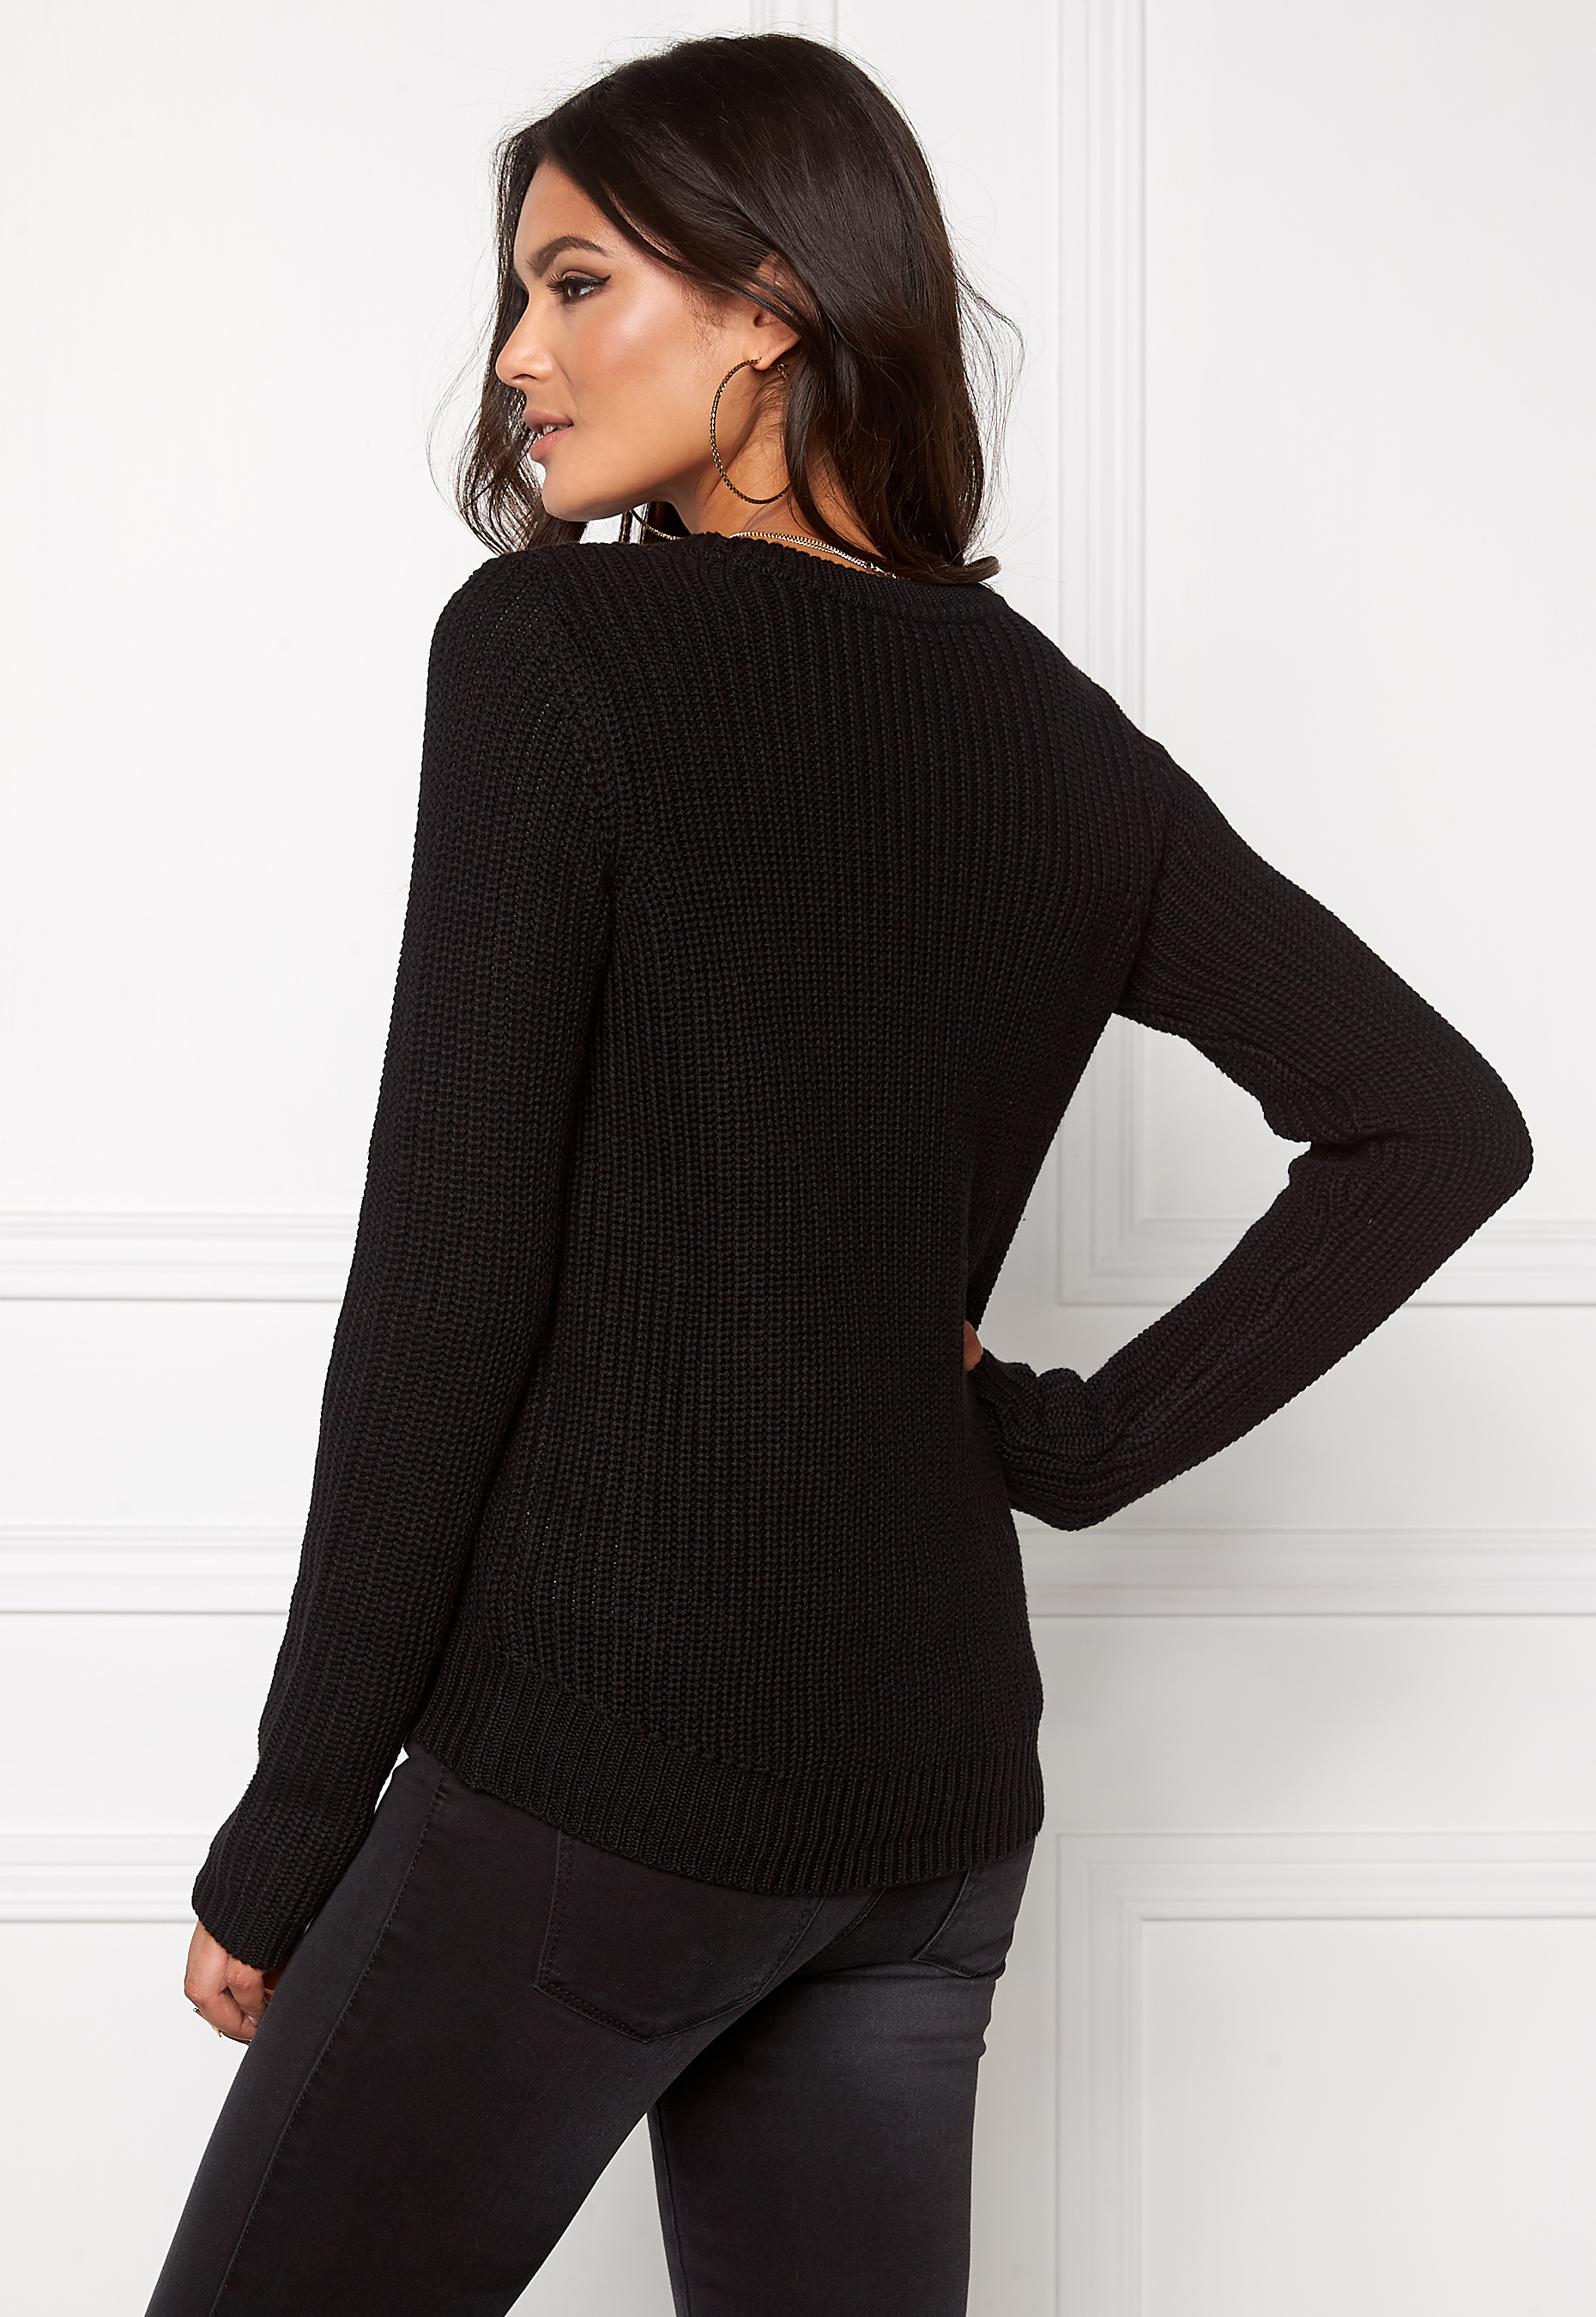 Vero Moda Knitting Yarns : Vero moda lex knit black bubbleroom